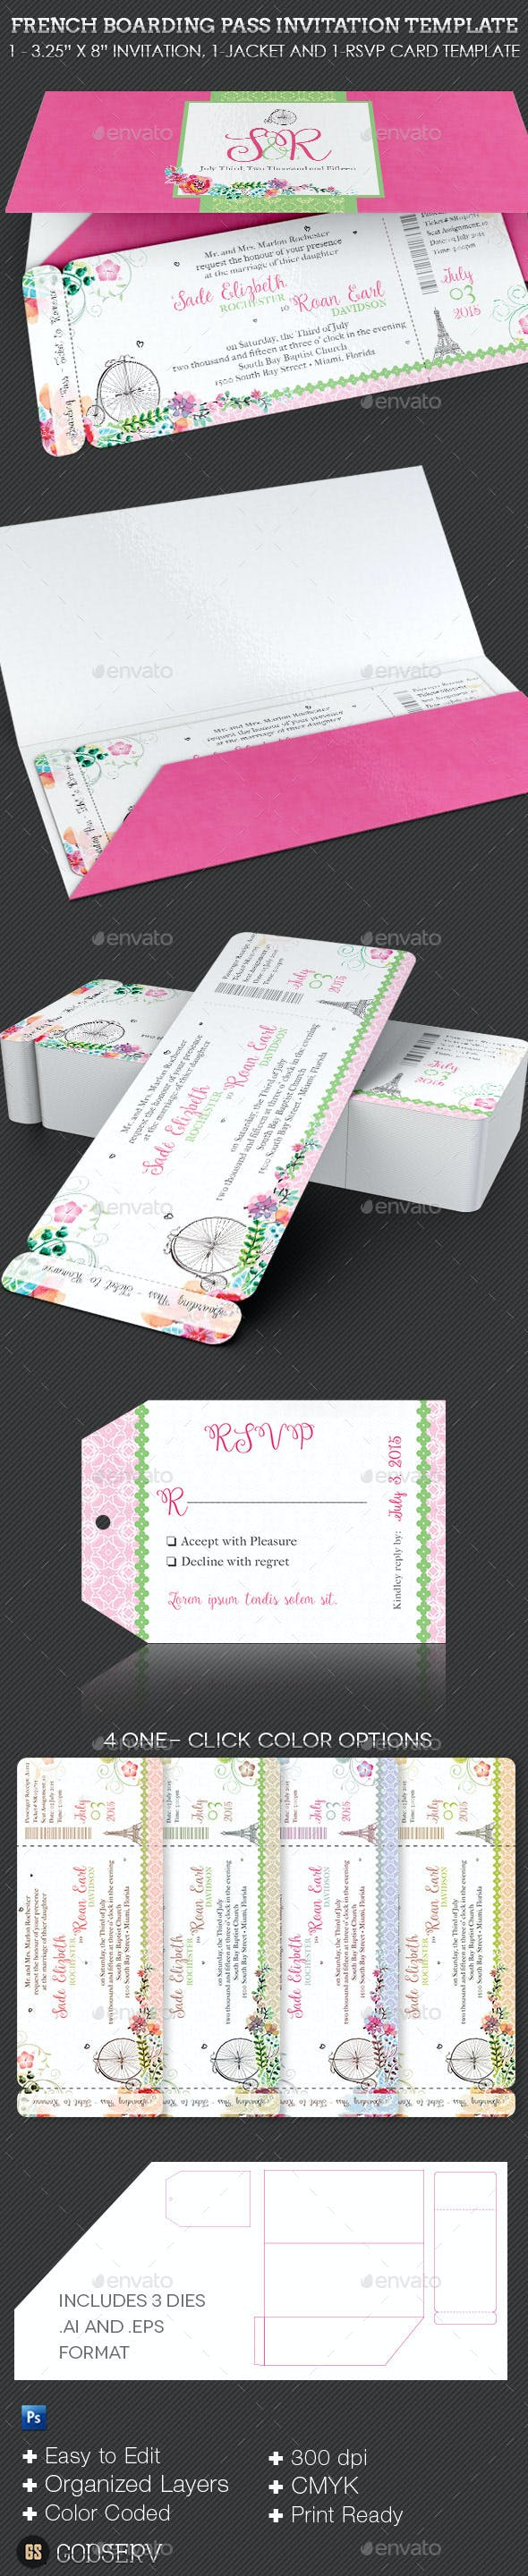 French Wedding Boarding Pass Invitation Template By Godserv